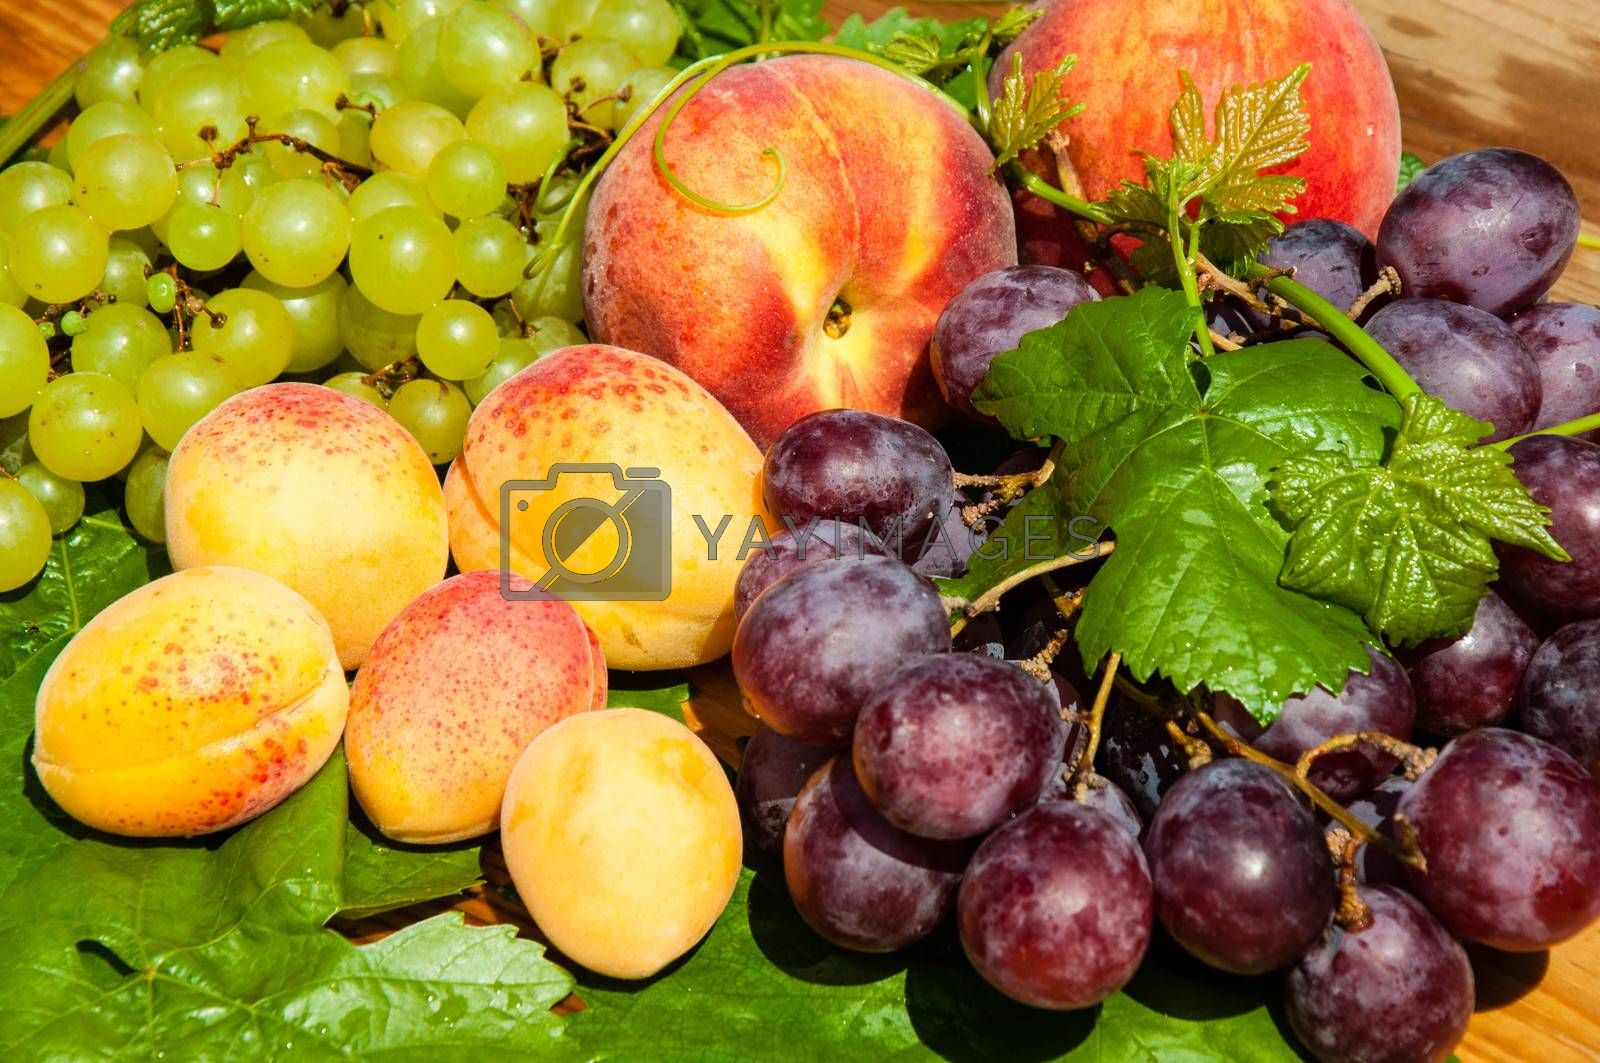 Ripe grapes and fruits on a wooden countertop